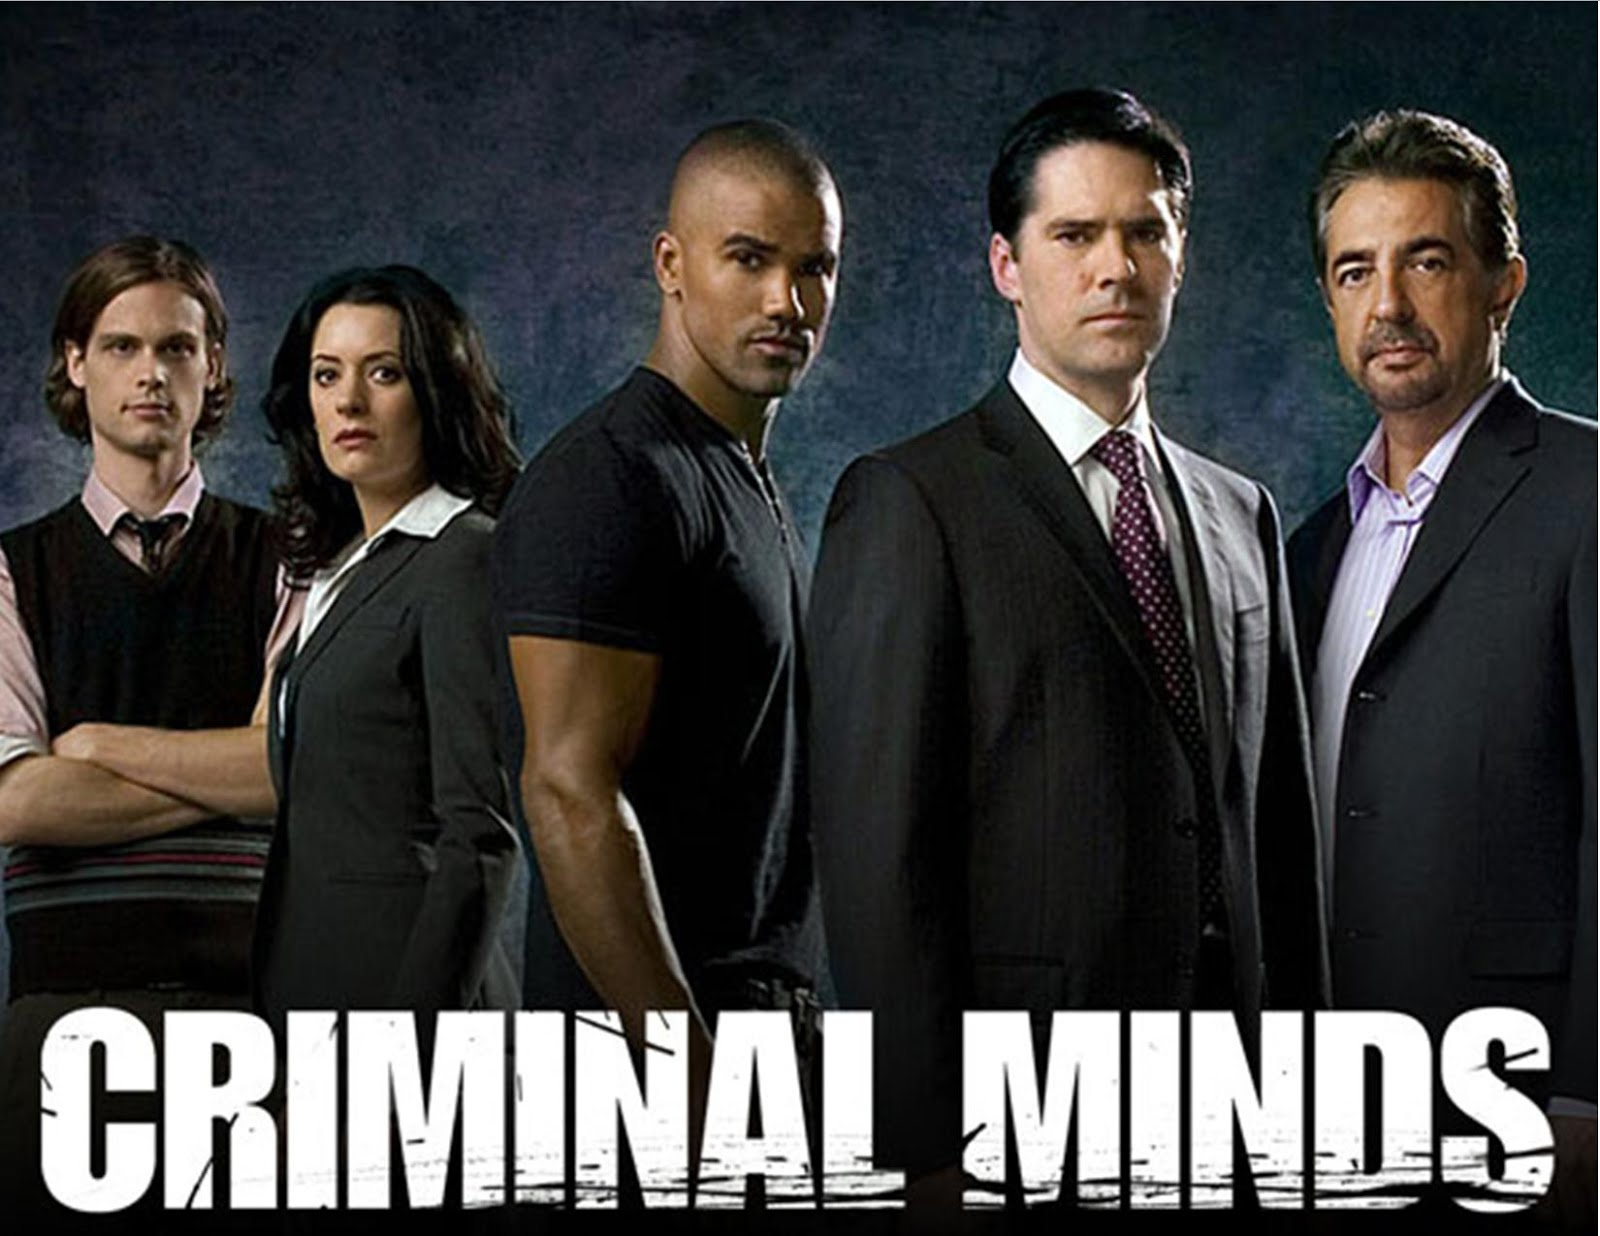 Watch Criminal Minds Season 8 Episode The Wheels On Bus Online Live Streaming